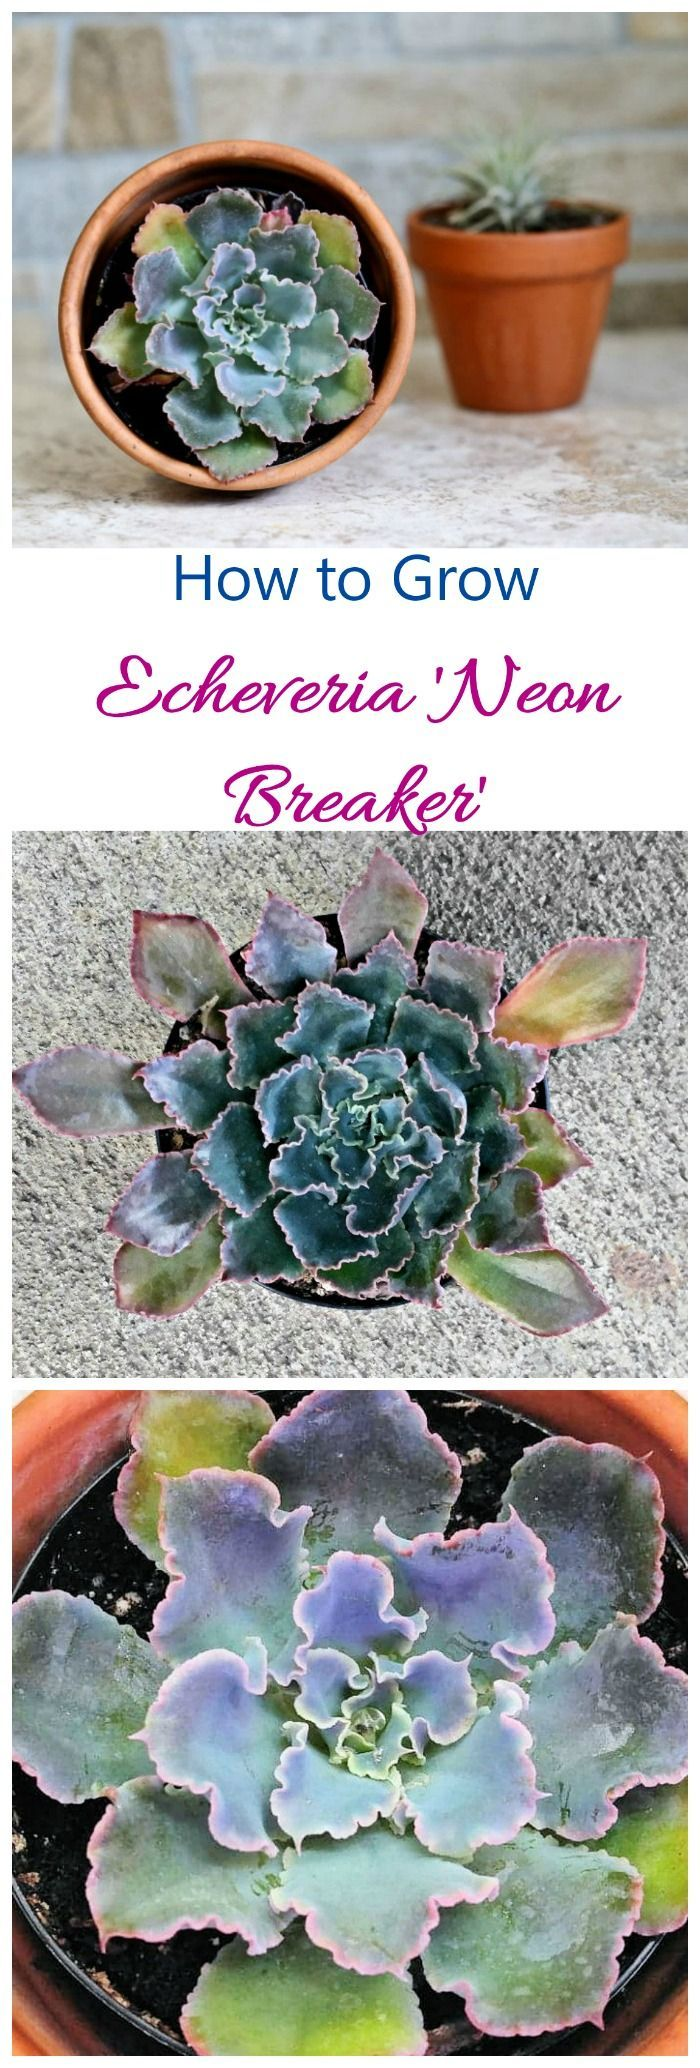 Echeveria Neon Breakers has blue green leaves with deep pin margins and curled edges. It is drought resistant and easy to grow if you follow a few tips. #echeveria #succulents